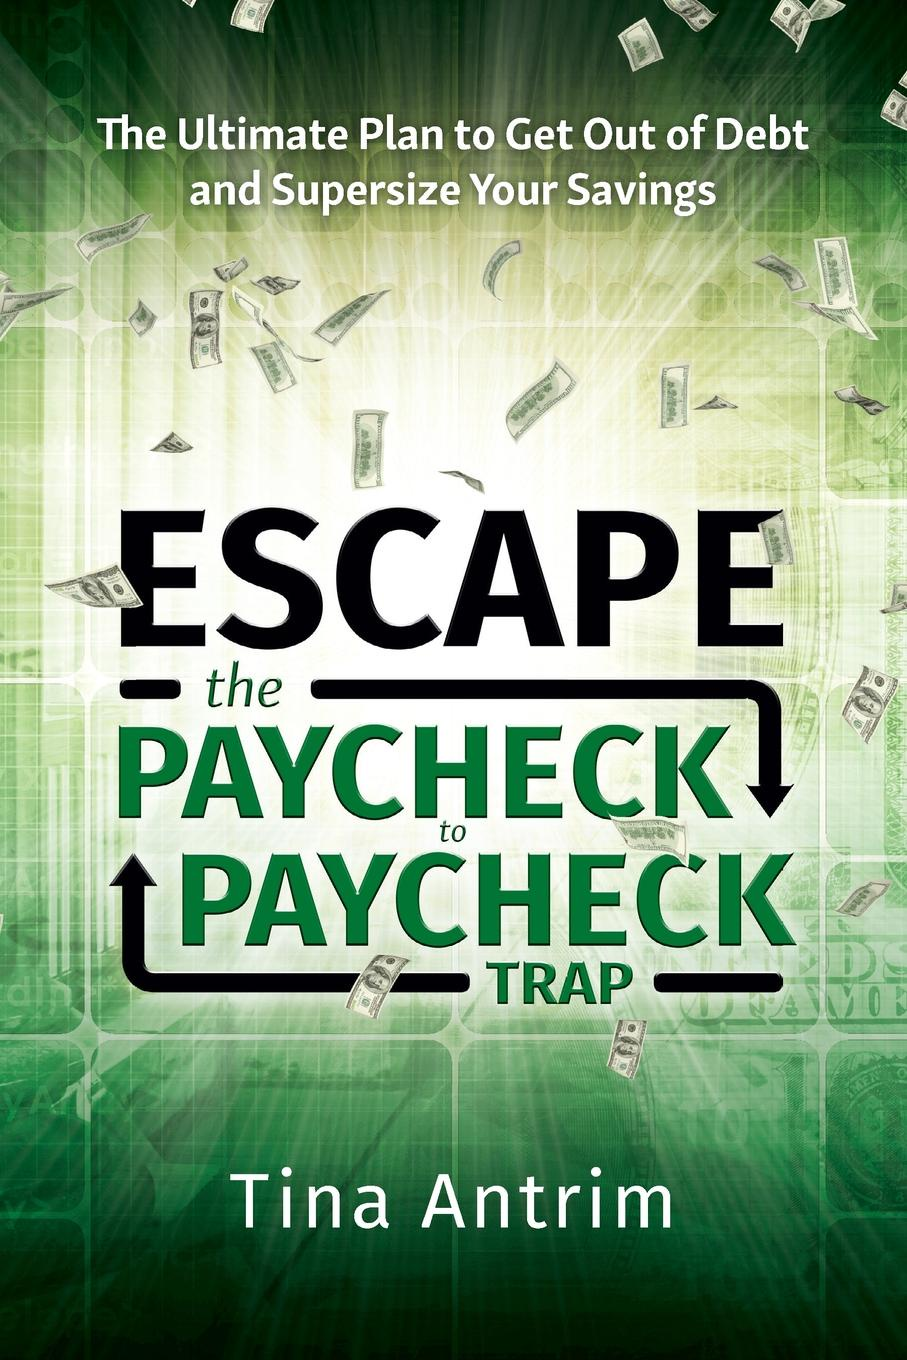 Tina Antrim Escape the Paycheck to Paycheck Trap. The Ultimate Plan to Get Out of Debt and Supersize Your Savings paul muolo $700 billion bailout the emergency economic stabilization act and what it means to you your money your mortgage and your taxes